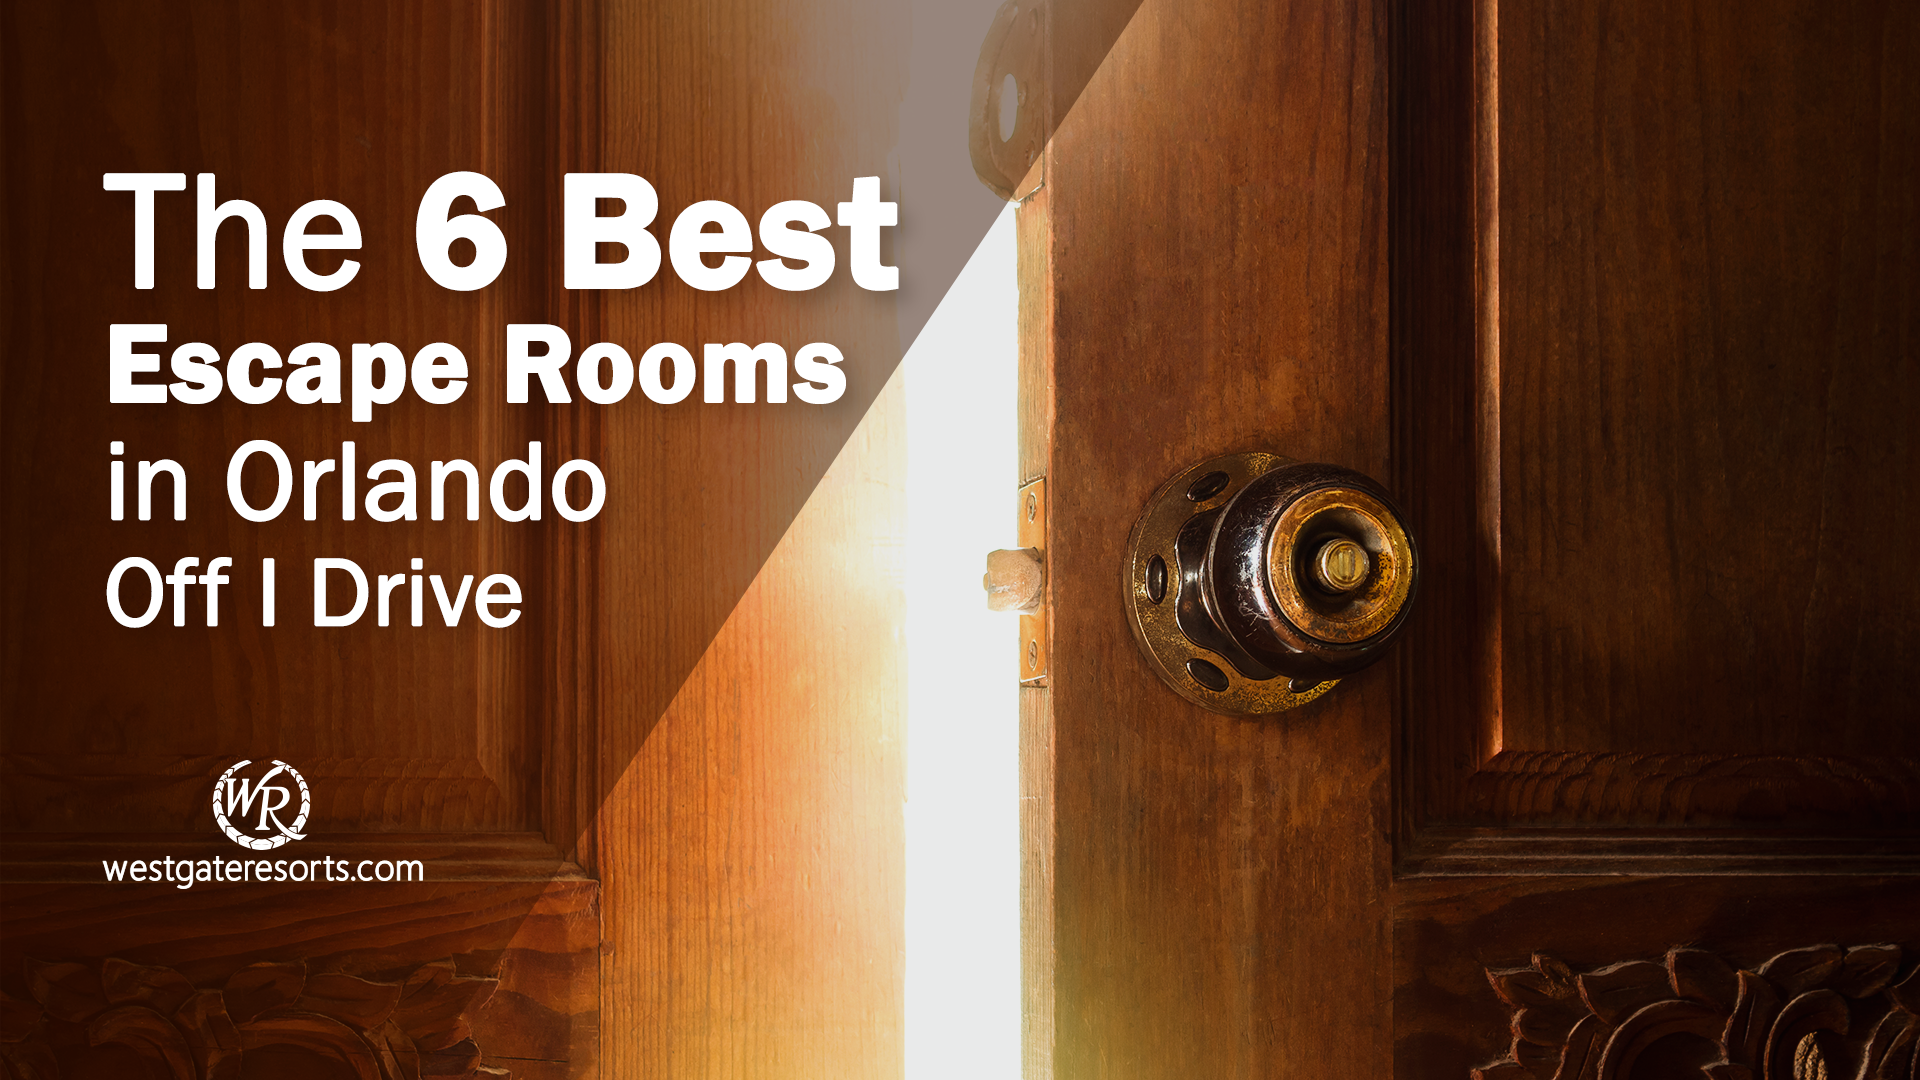 The 6 Best Escape Rooms in Orlando Off I Drive | Escape Rooms Orlando, FL | Westgate Resorts Orlando